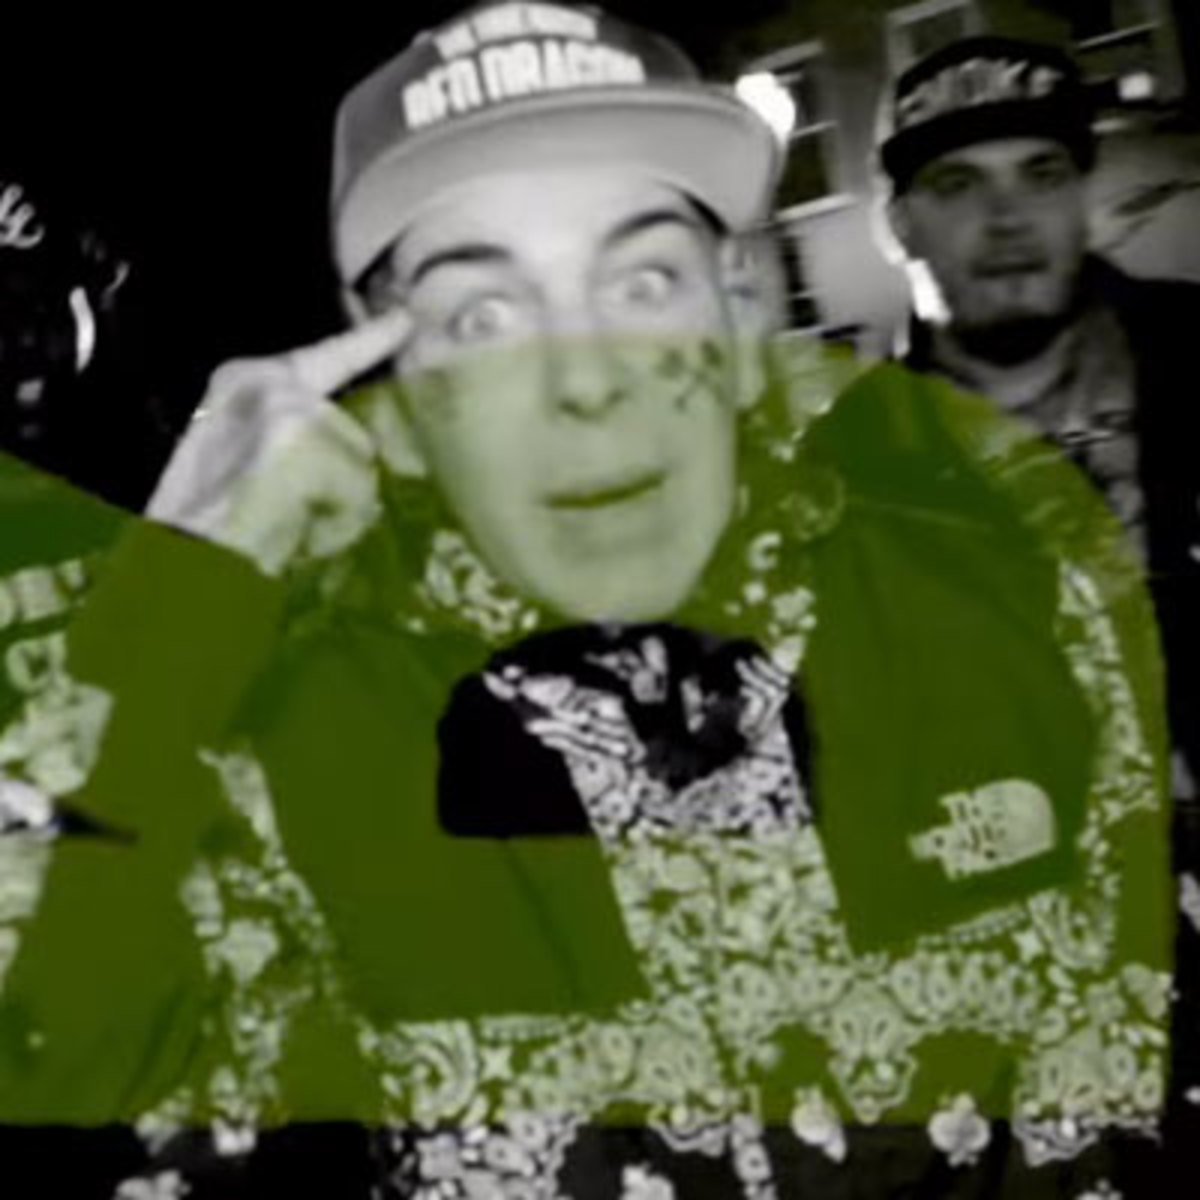 madchild-man-down.jpg